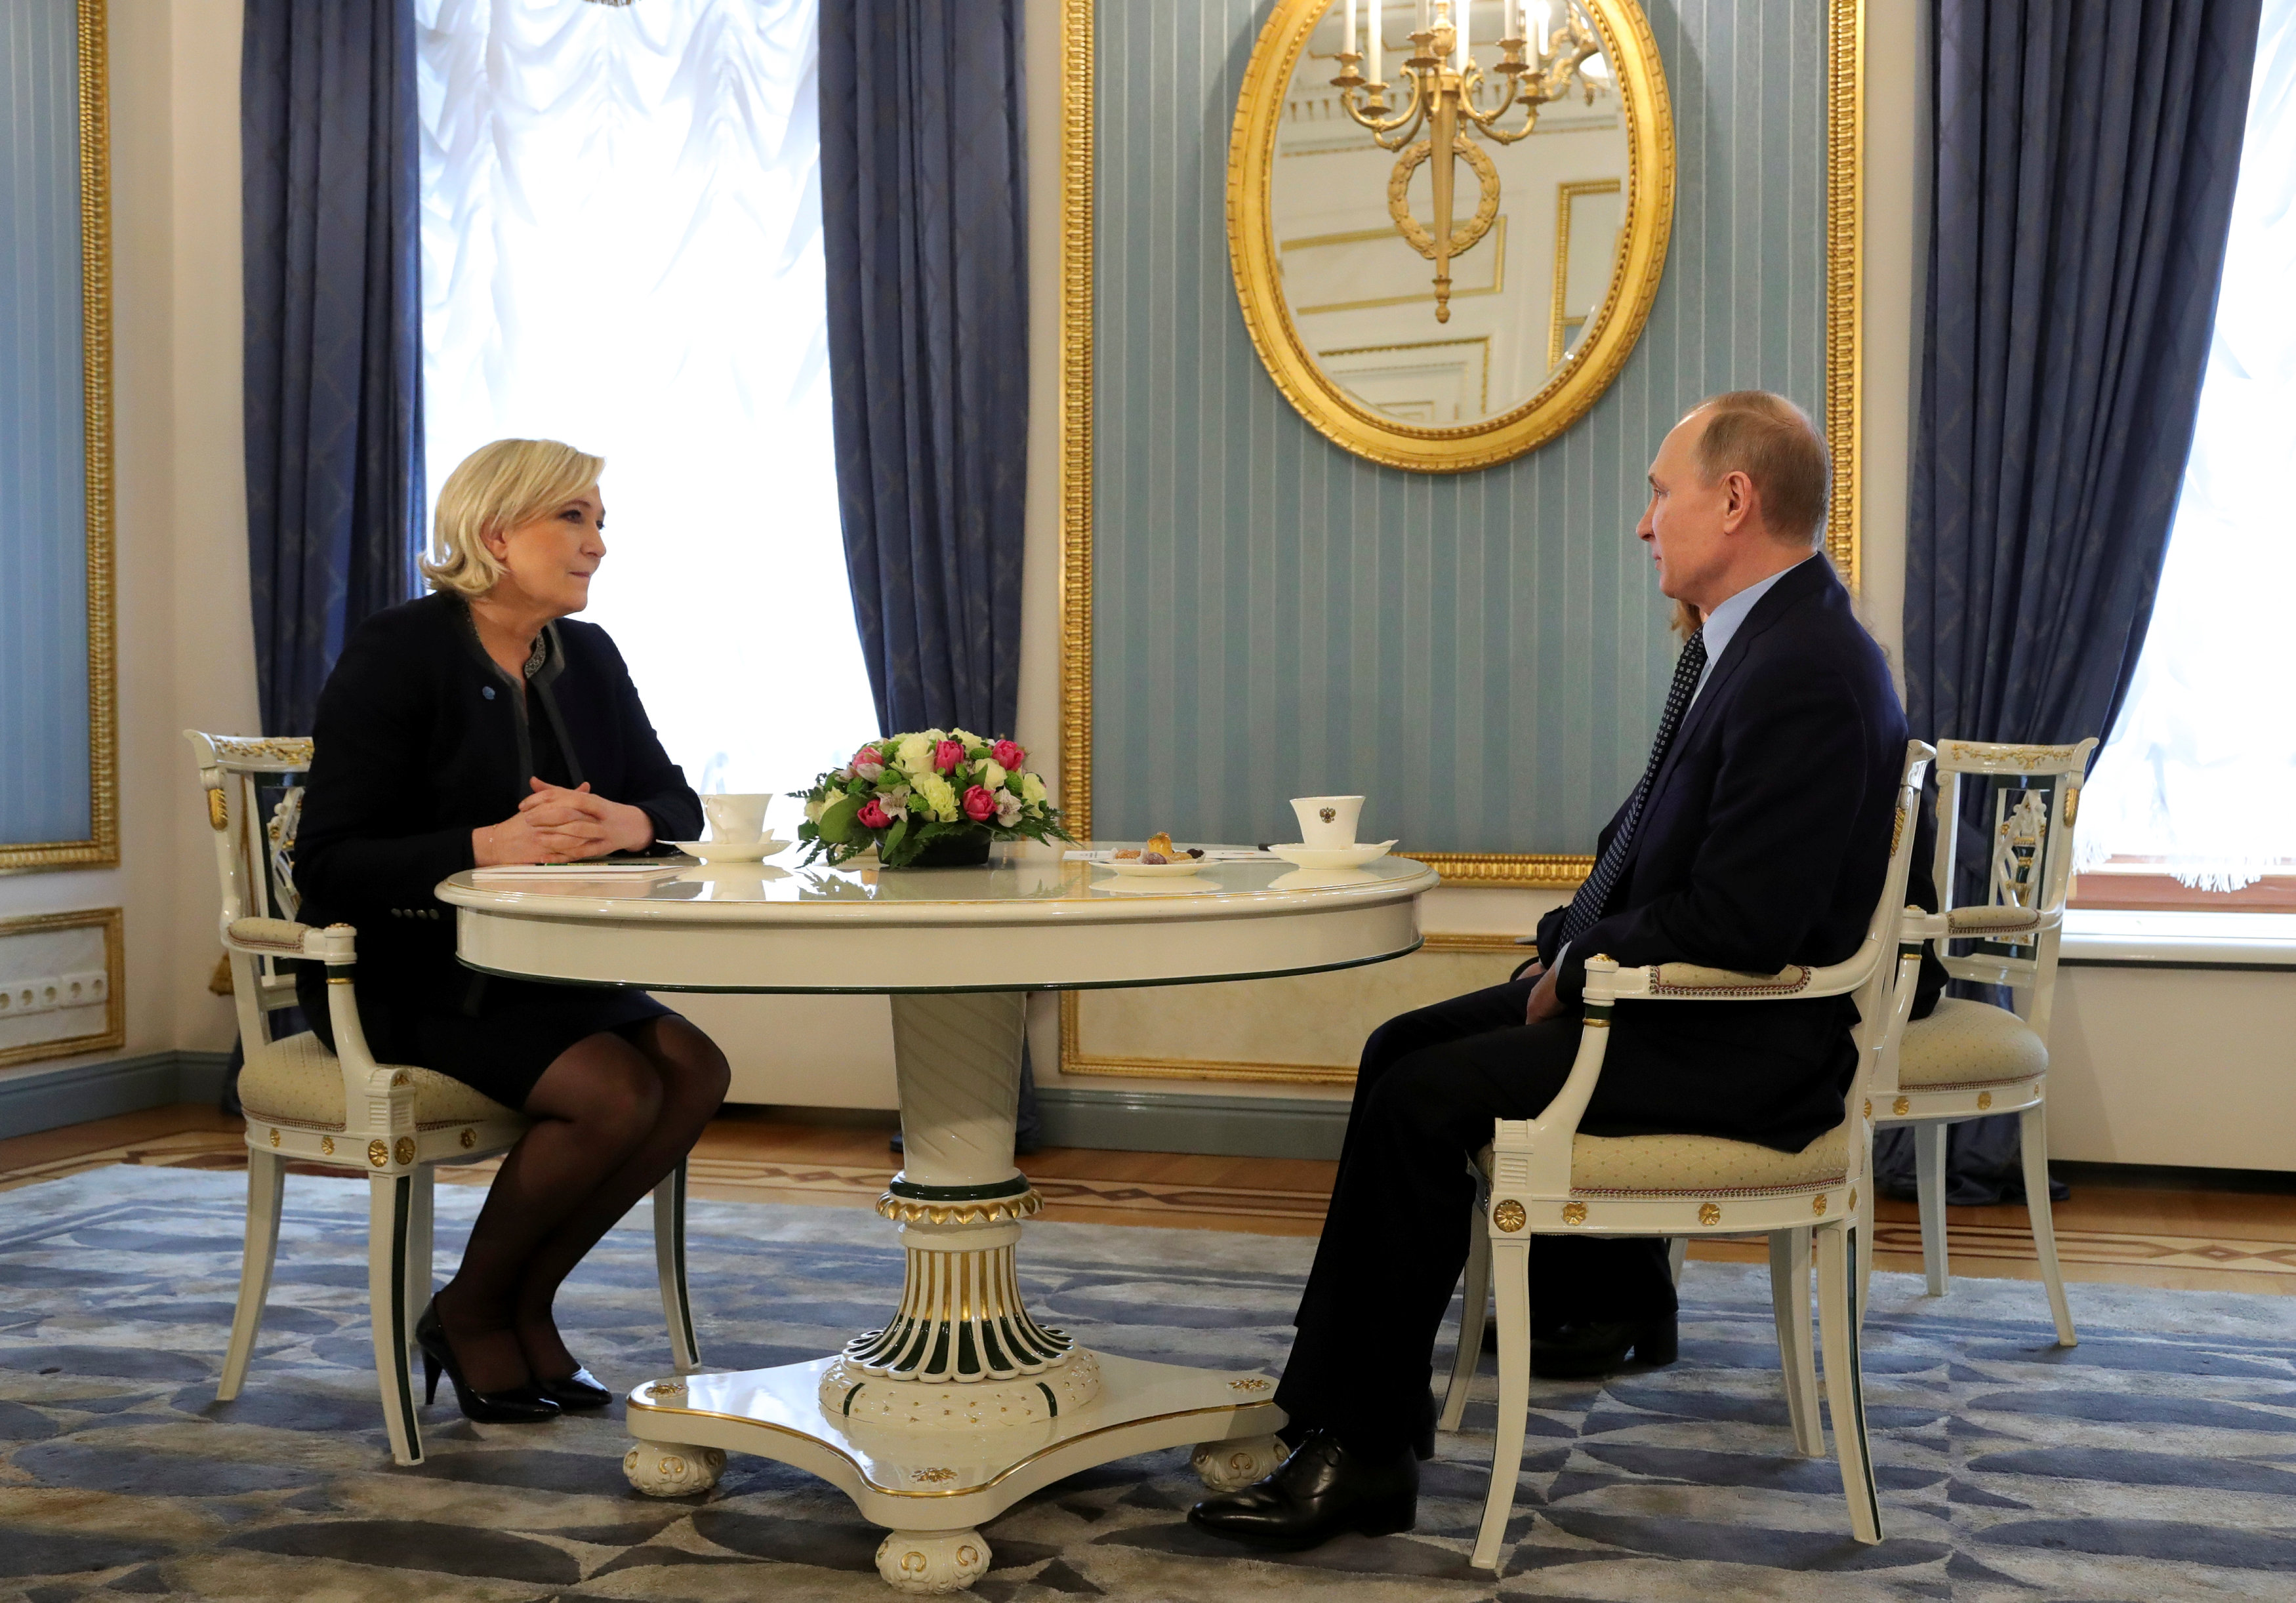 Russian President Vladimir Putin meets with Marine Le Pen, French National Front (FN) political party leader and candidate for the French 2017 presidential election, in Moscow in Russia on March 24, 2017. (Sputnik/Mikhail Klimentyev/Kremlin via REUTERS)